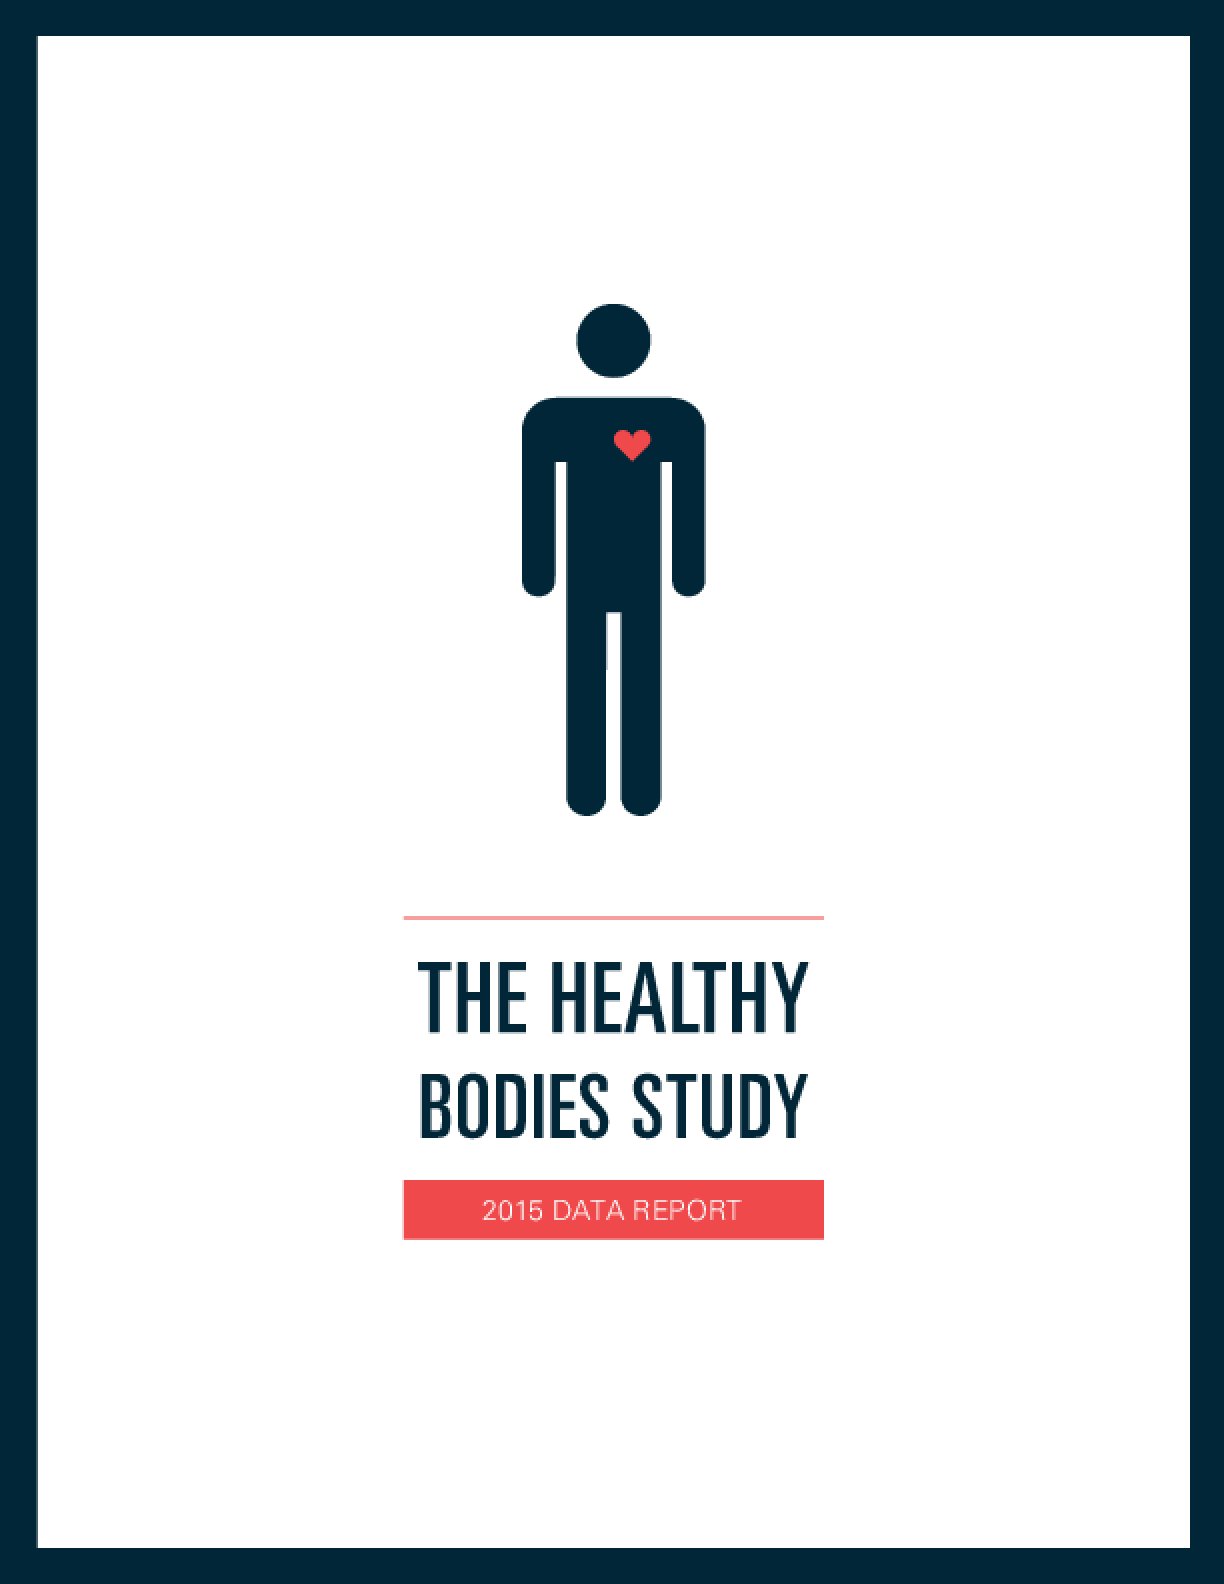 The Healthy Bodies Study: 2015 Data Report